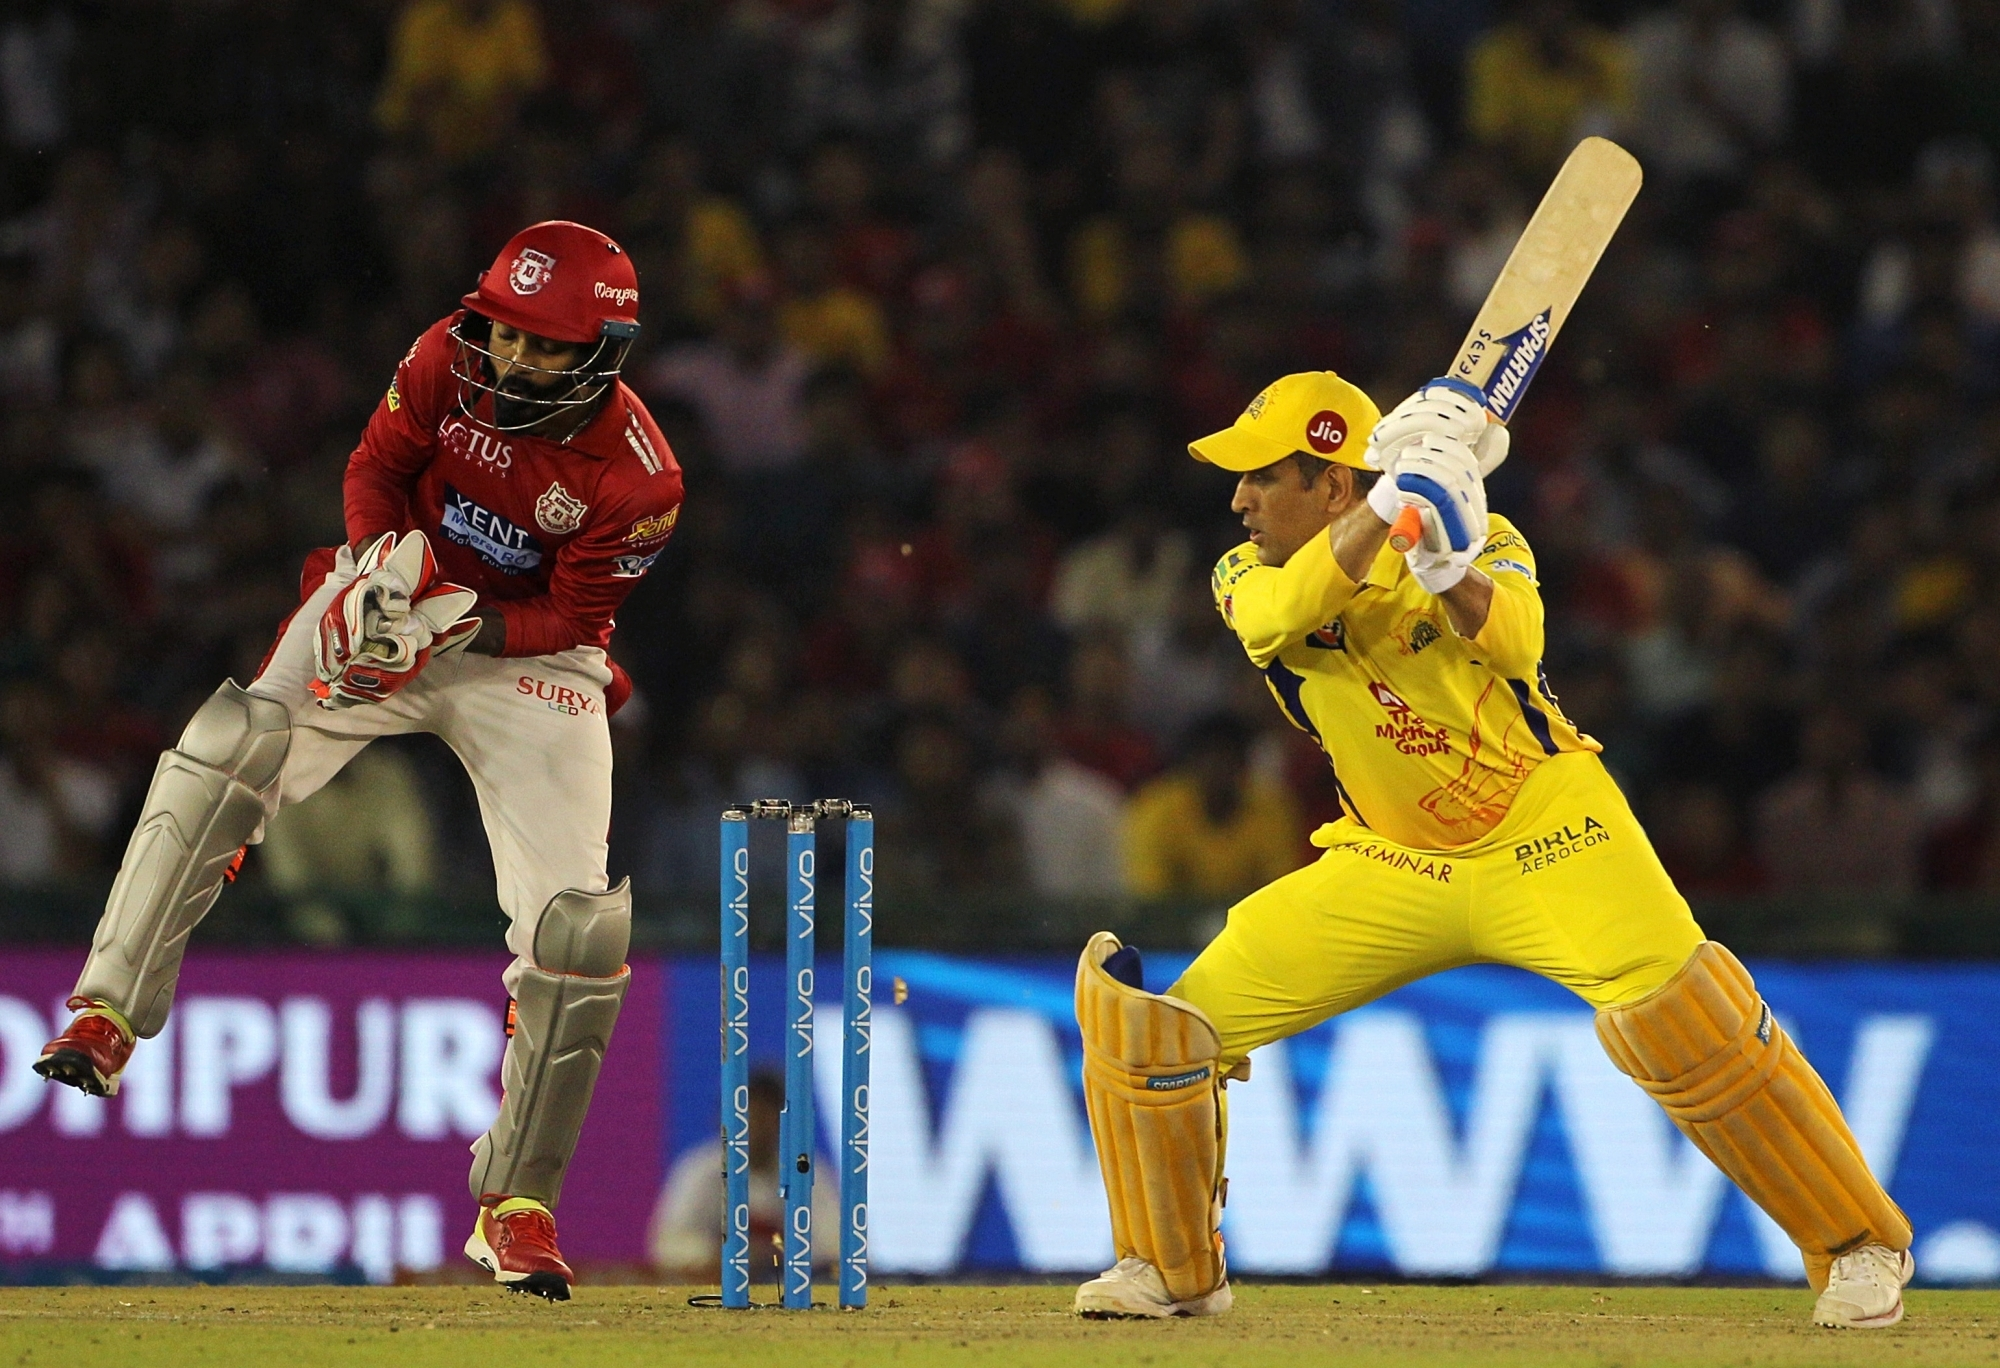 Mohali: MS Dhoni of Chennai Super Kings in action during an IPL 2018 match between Kings XI Punjab and Chennai Super Kings at the Punjab Cricket Association IS Bindra Stadium in Mohali on April 15, 2018. (Photo: Surjeet Yadav/IANS)